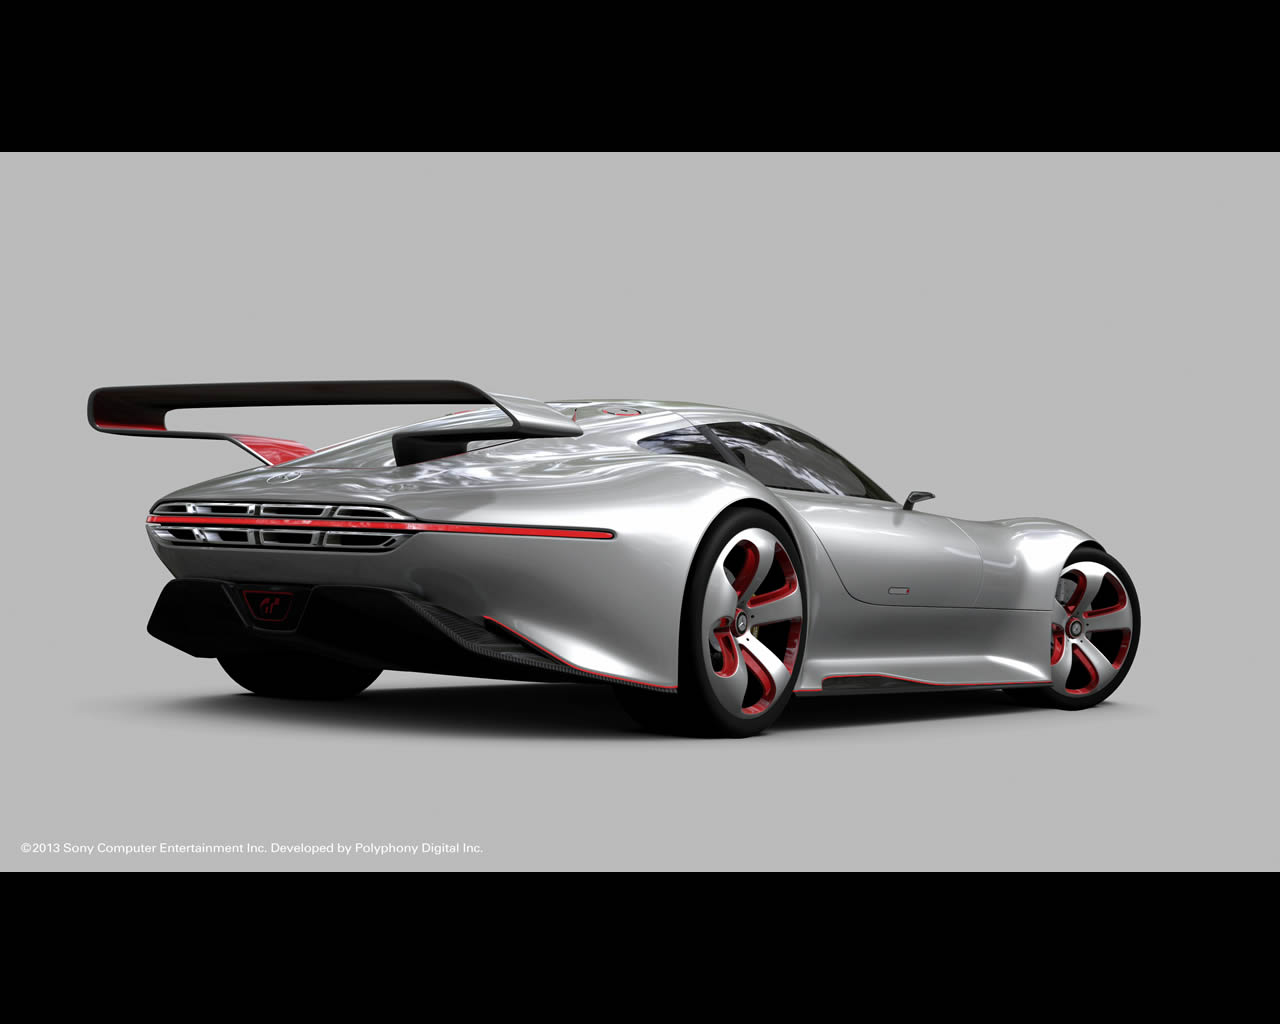 Mercedes Benz AMG Vision Gran Turismo   Developed for the 1280x1024